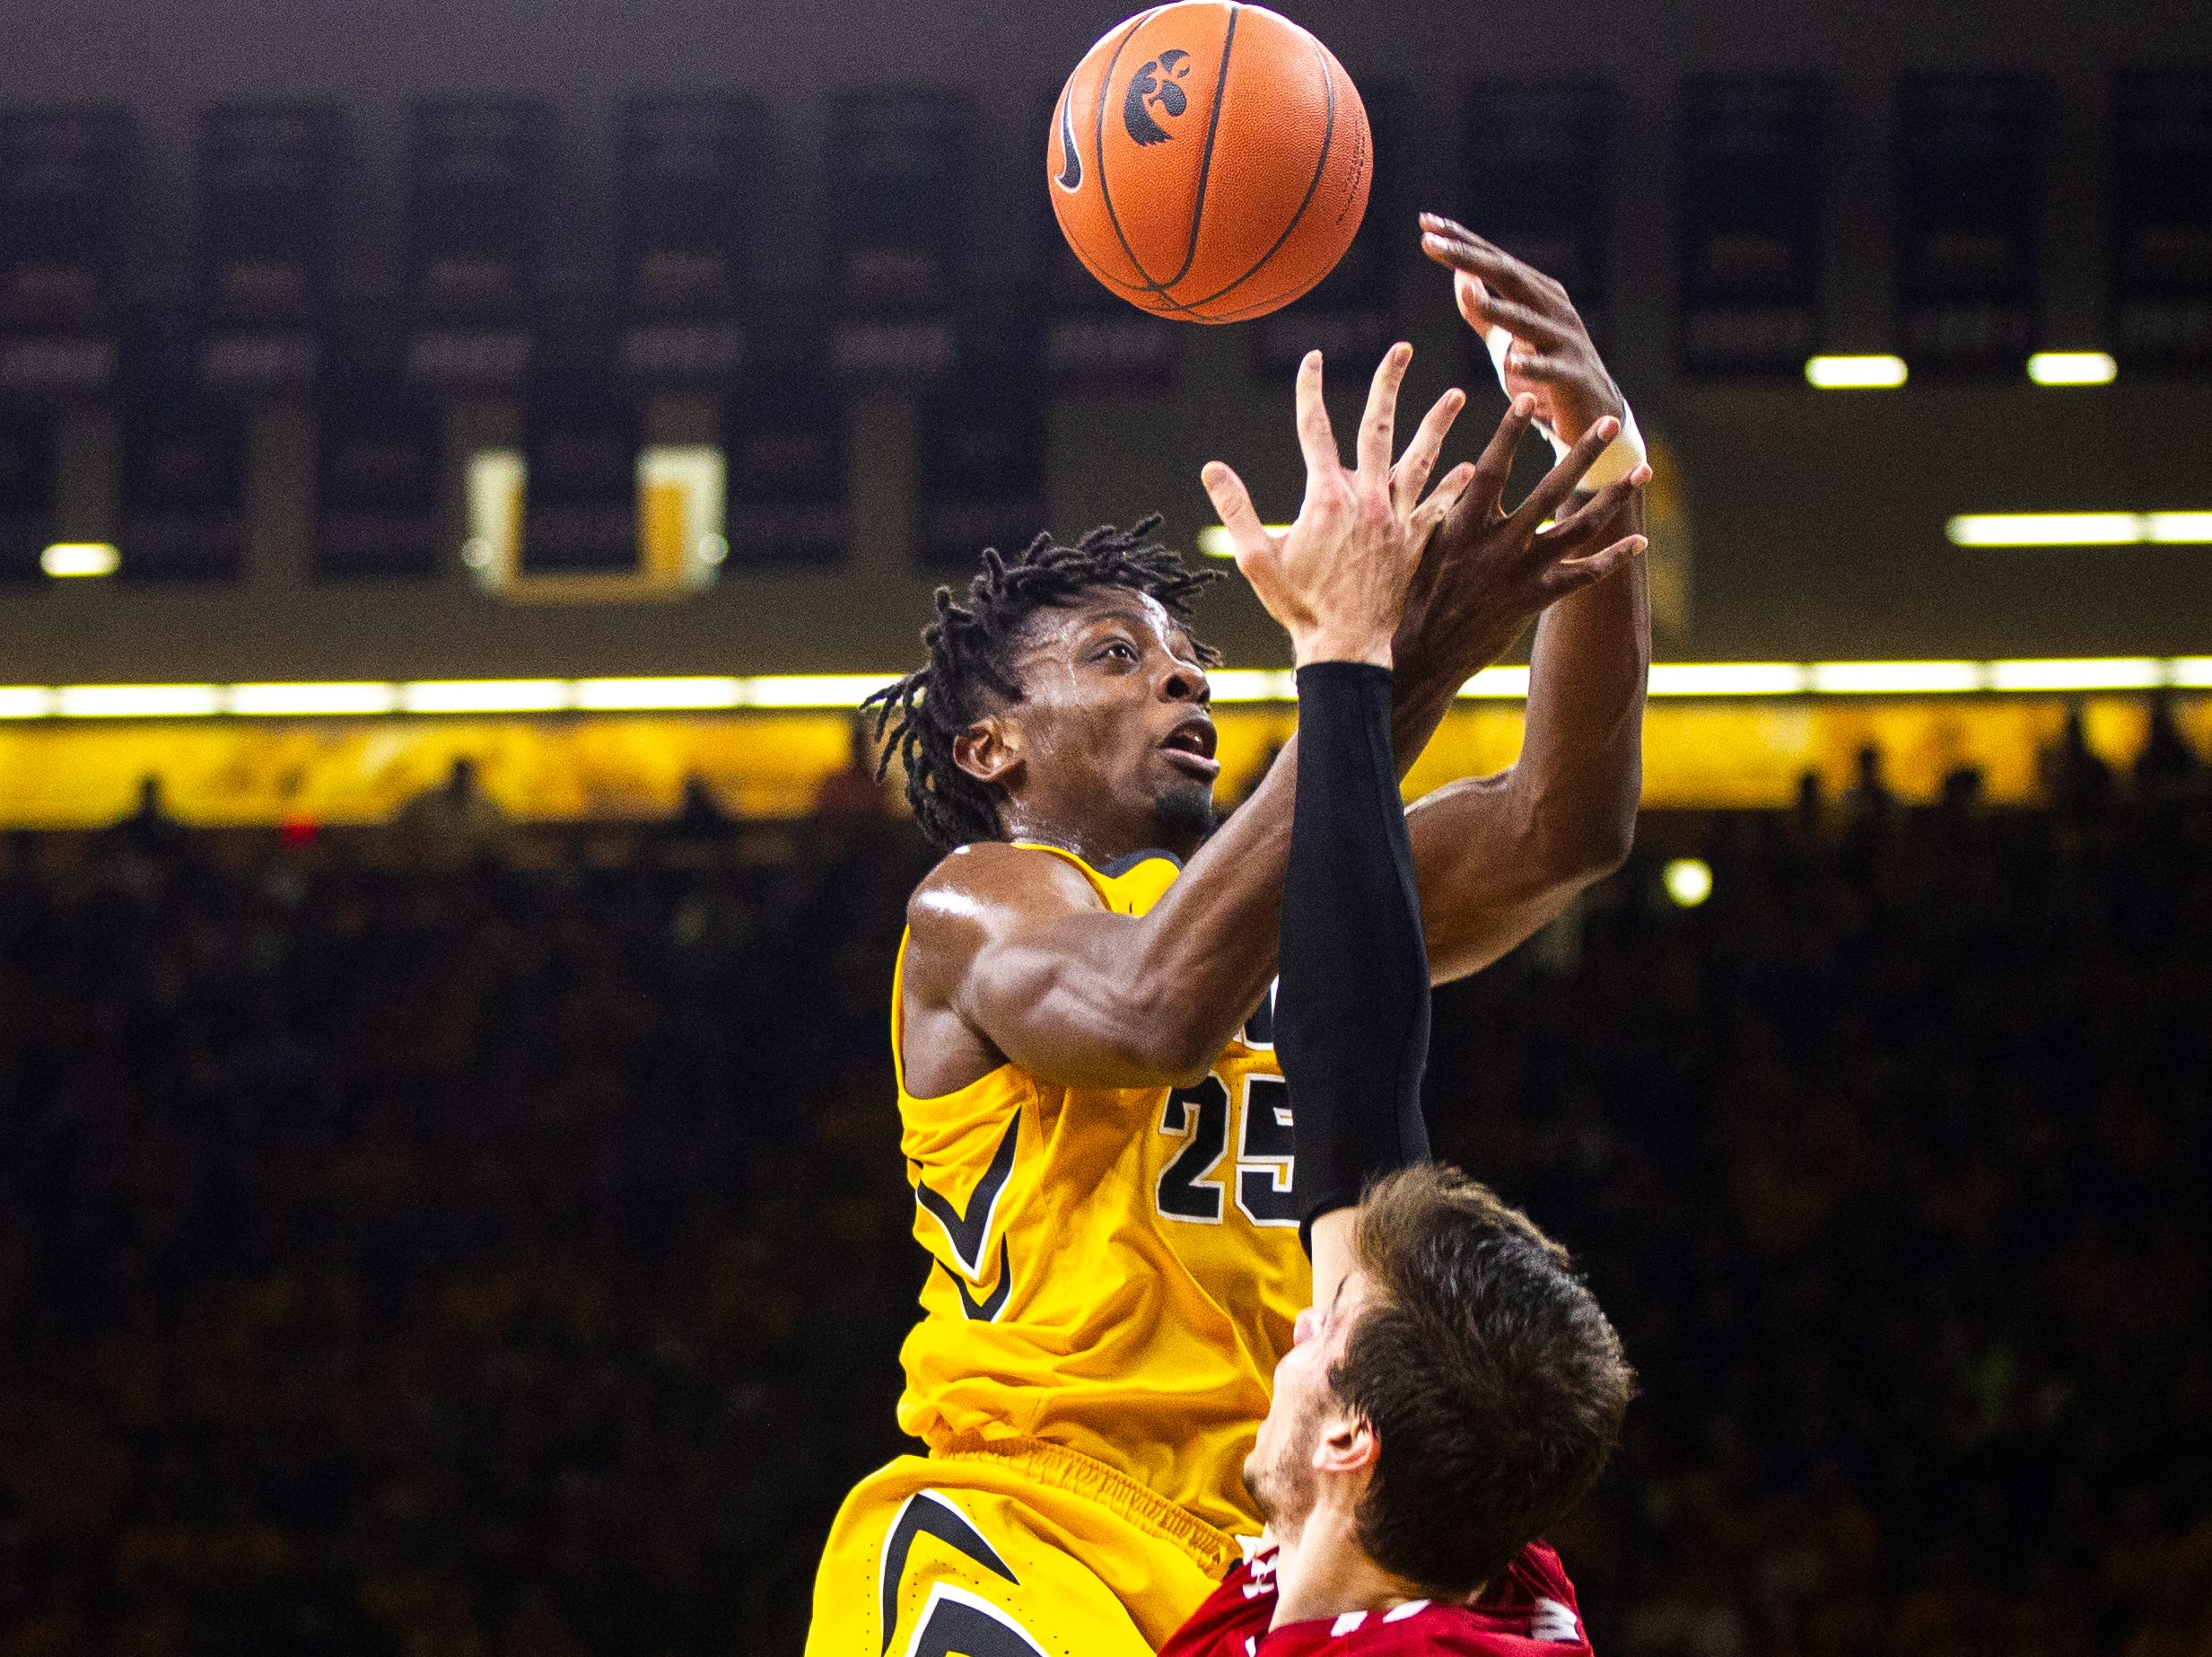 Iowa forward Tyler Cook (25) gets his shot blocked by Wisconsin's Ethan Happ during a NCAA Big Ten Conference men's basketball game on Friday, Nov. 30, 2018, at Carver-Hawkeye Arena in Iowa City.